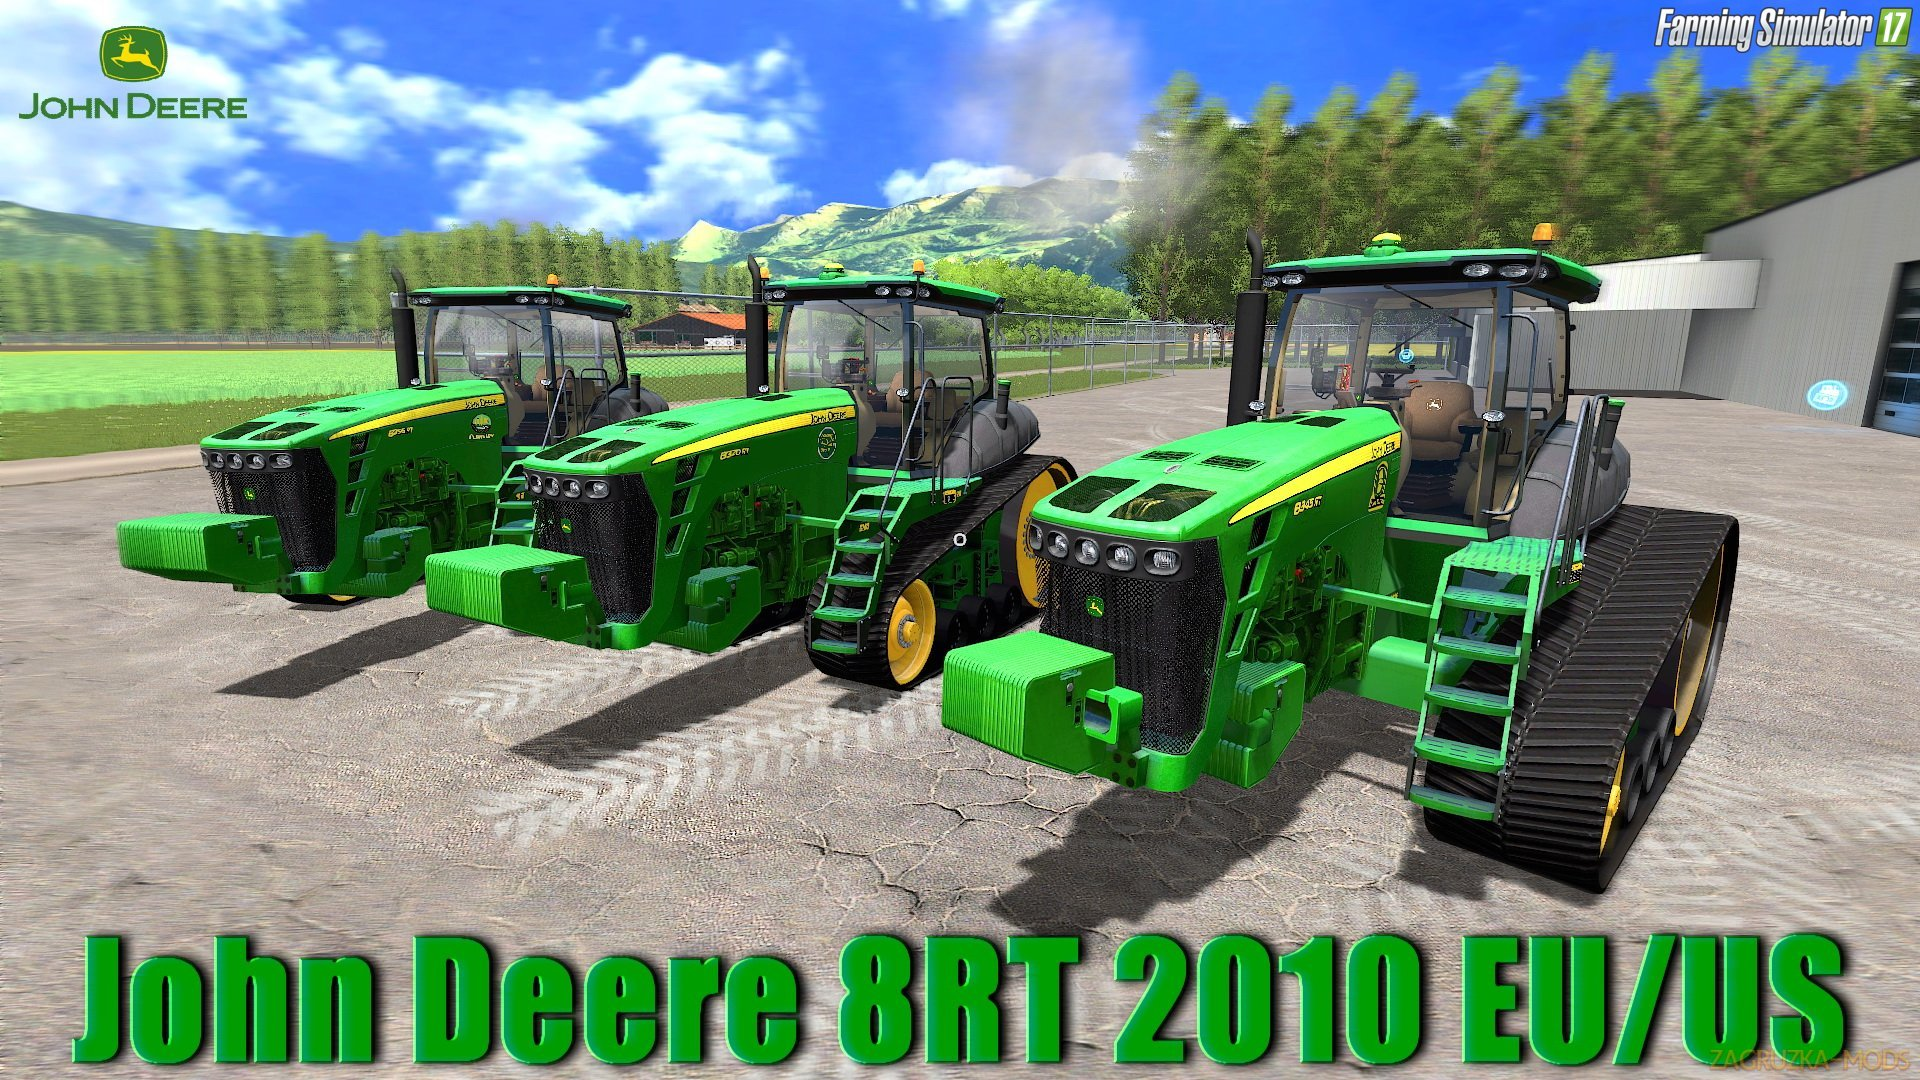 John Deere 8RT 2010 EU/US v2.0 for FS17